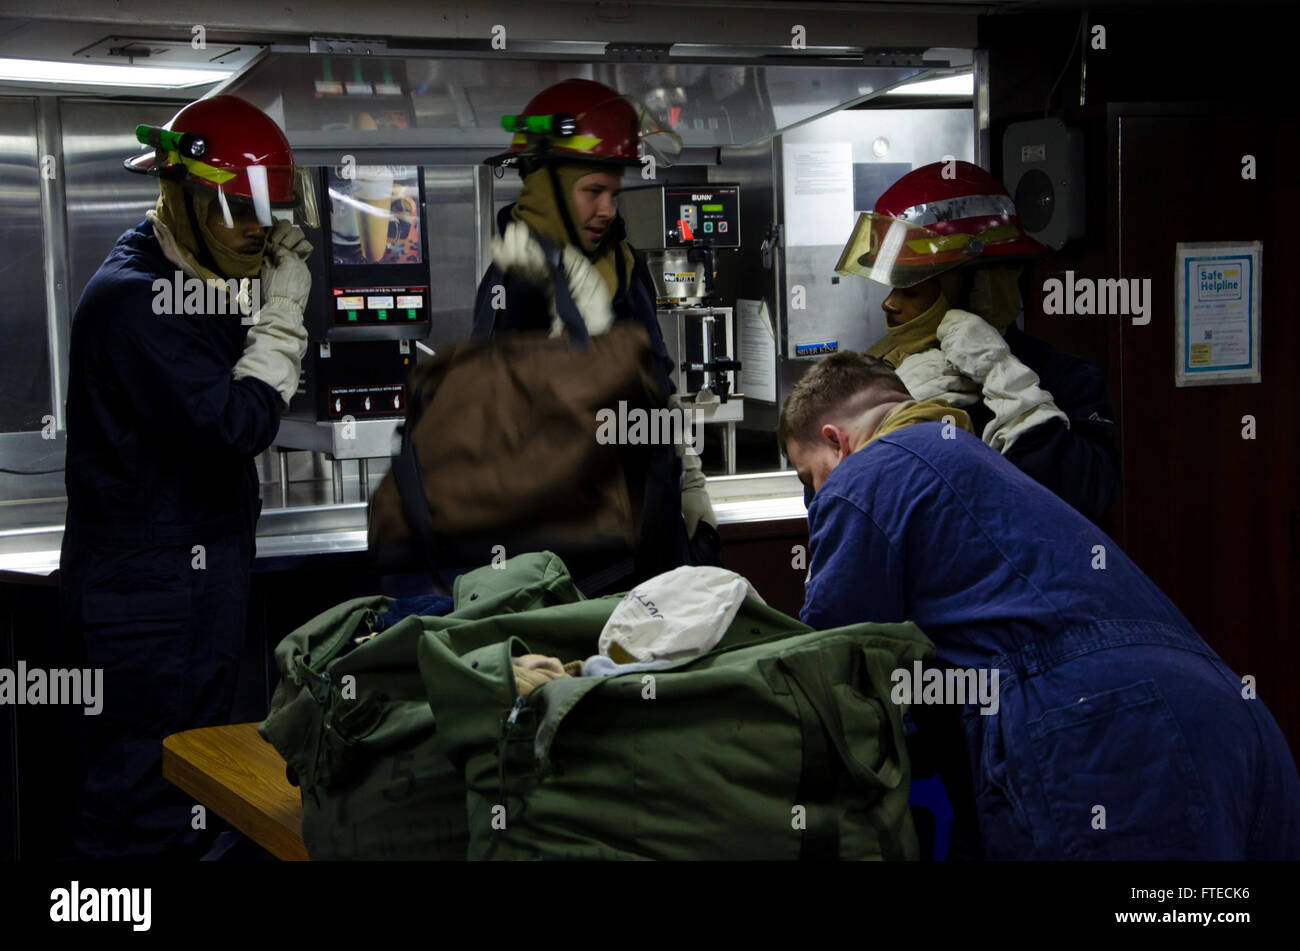 """140805-N-KT328-006 """"MEDITERRANEAN (August 05, 2014) – Sailors aboard the guided-missile frigate USS Samuel - Stock Image"""